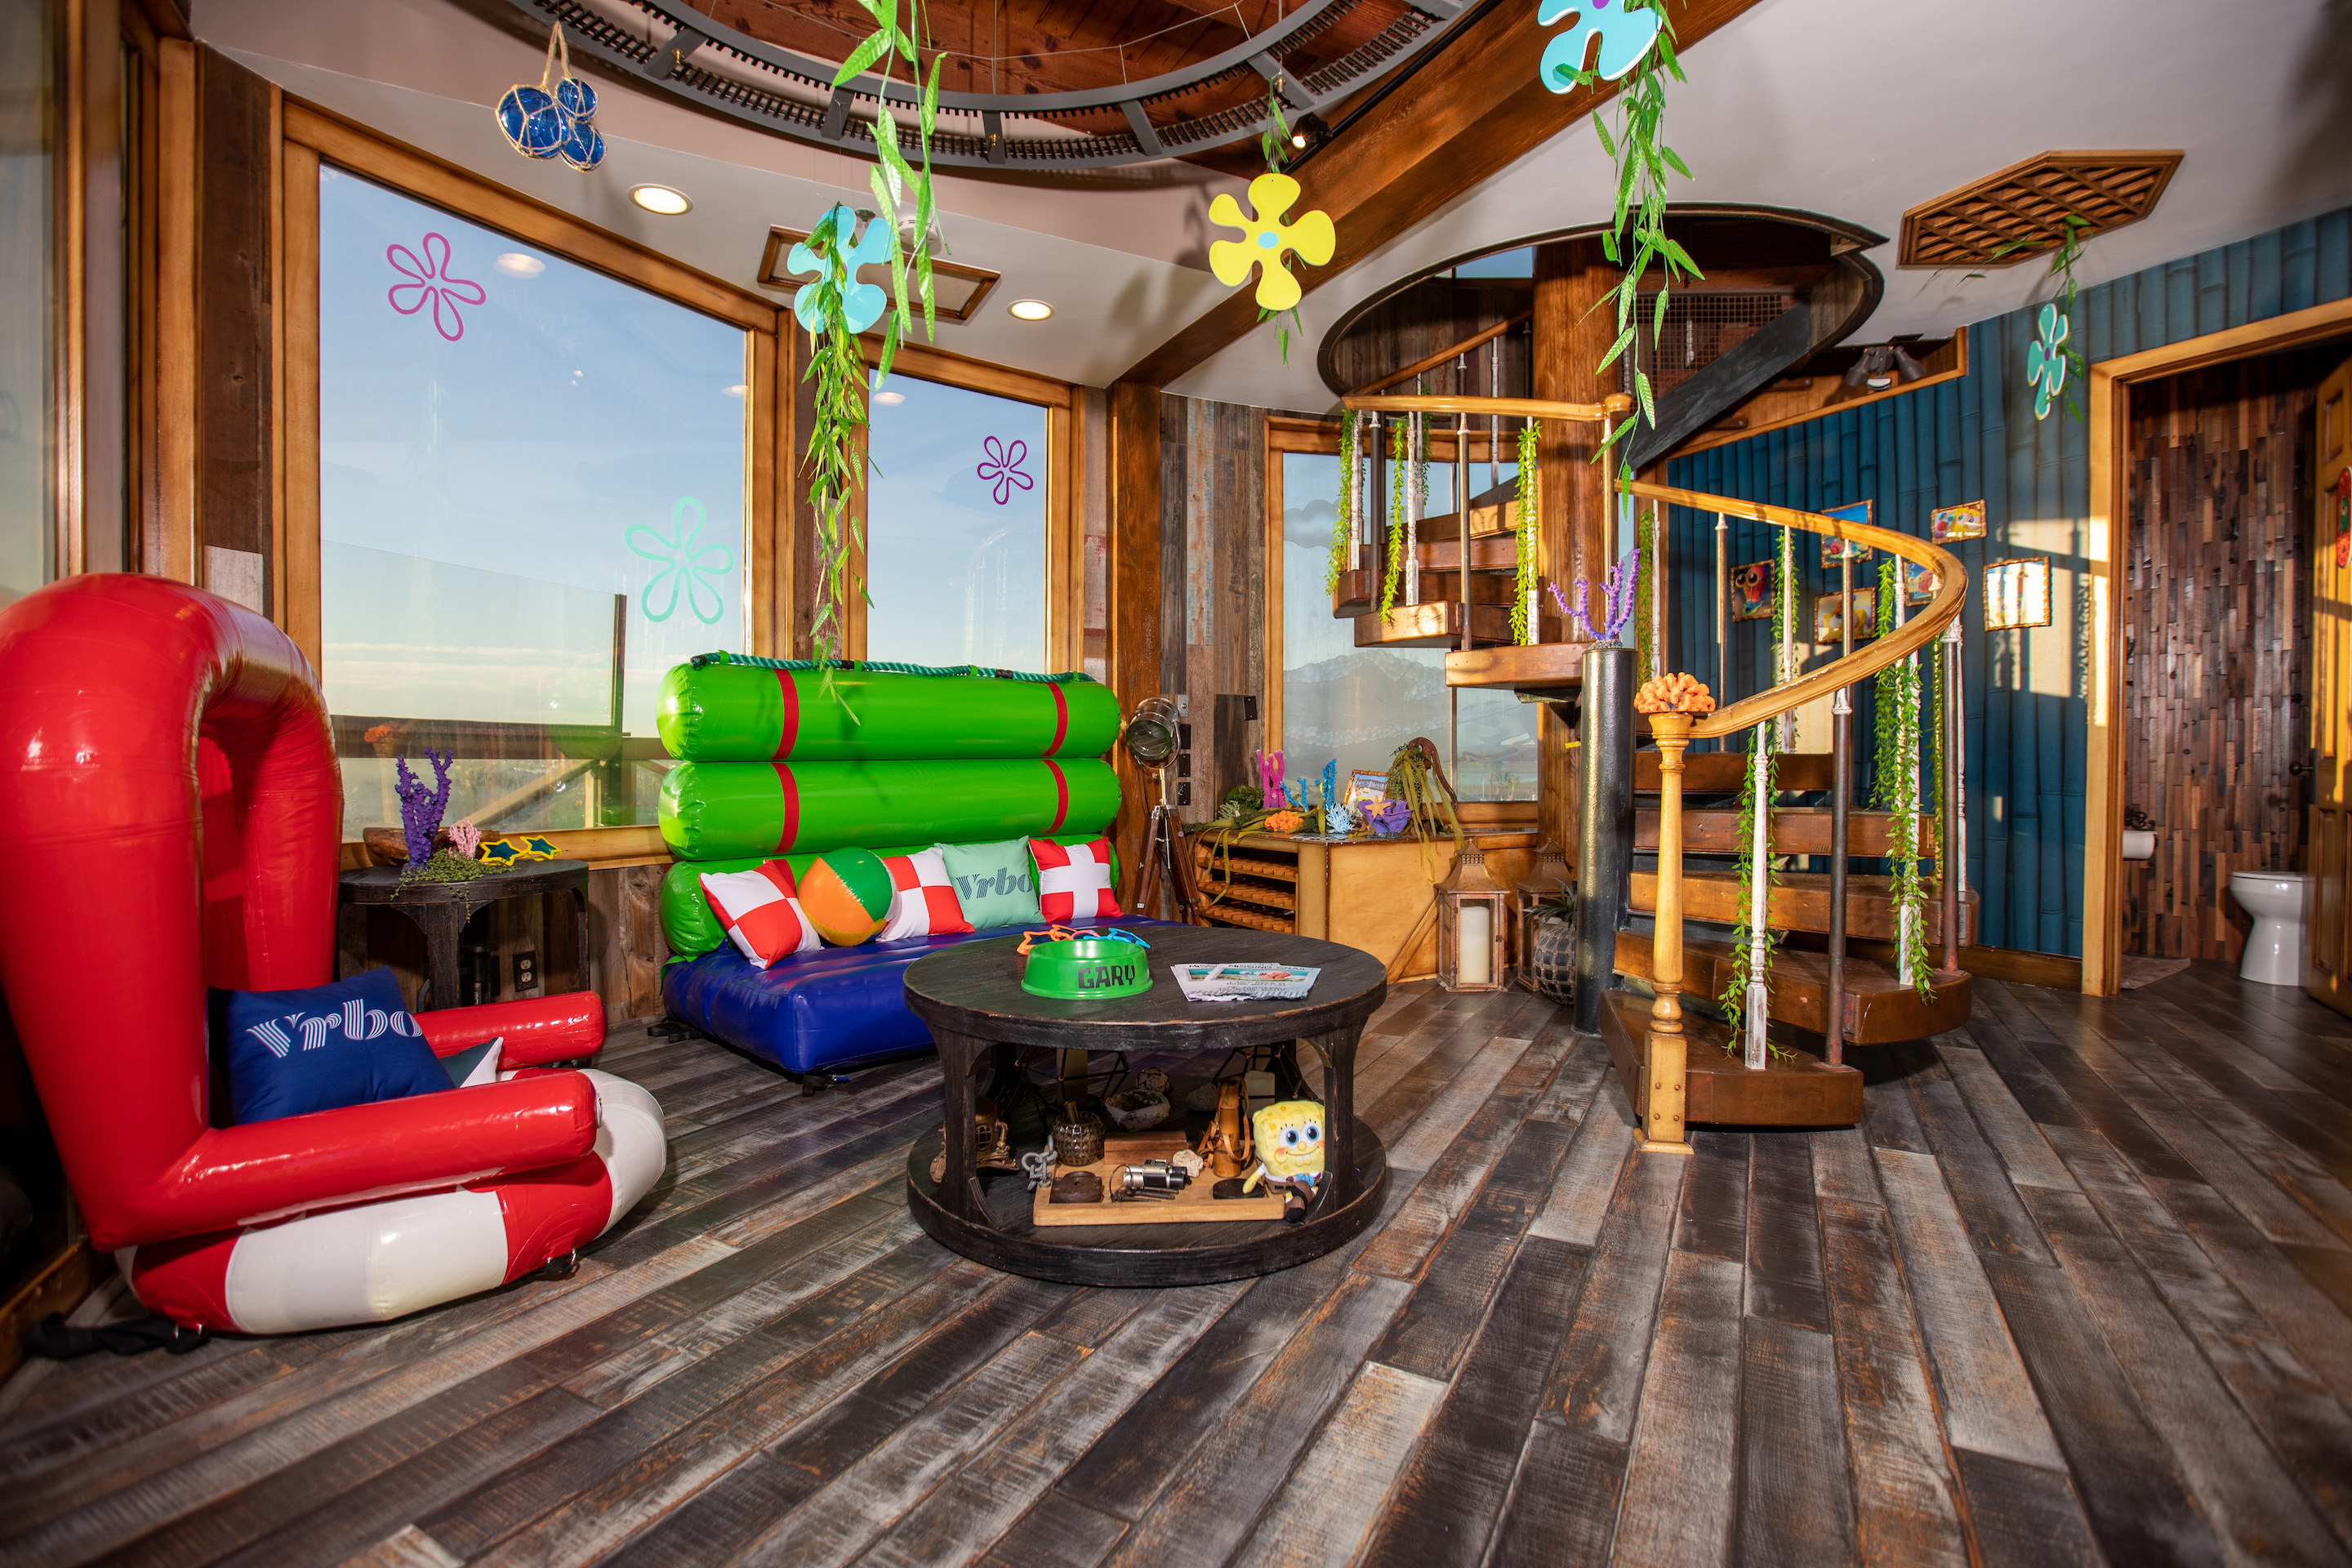 The entry which shows Spongebob's red chair made of a life preserver and a green couch